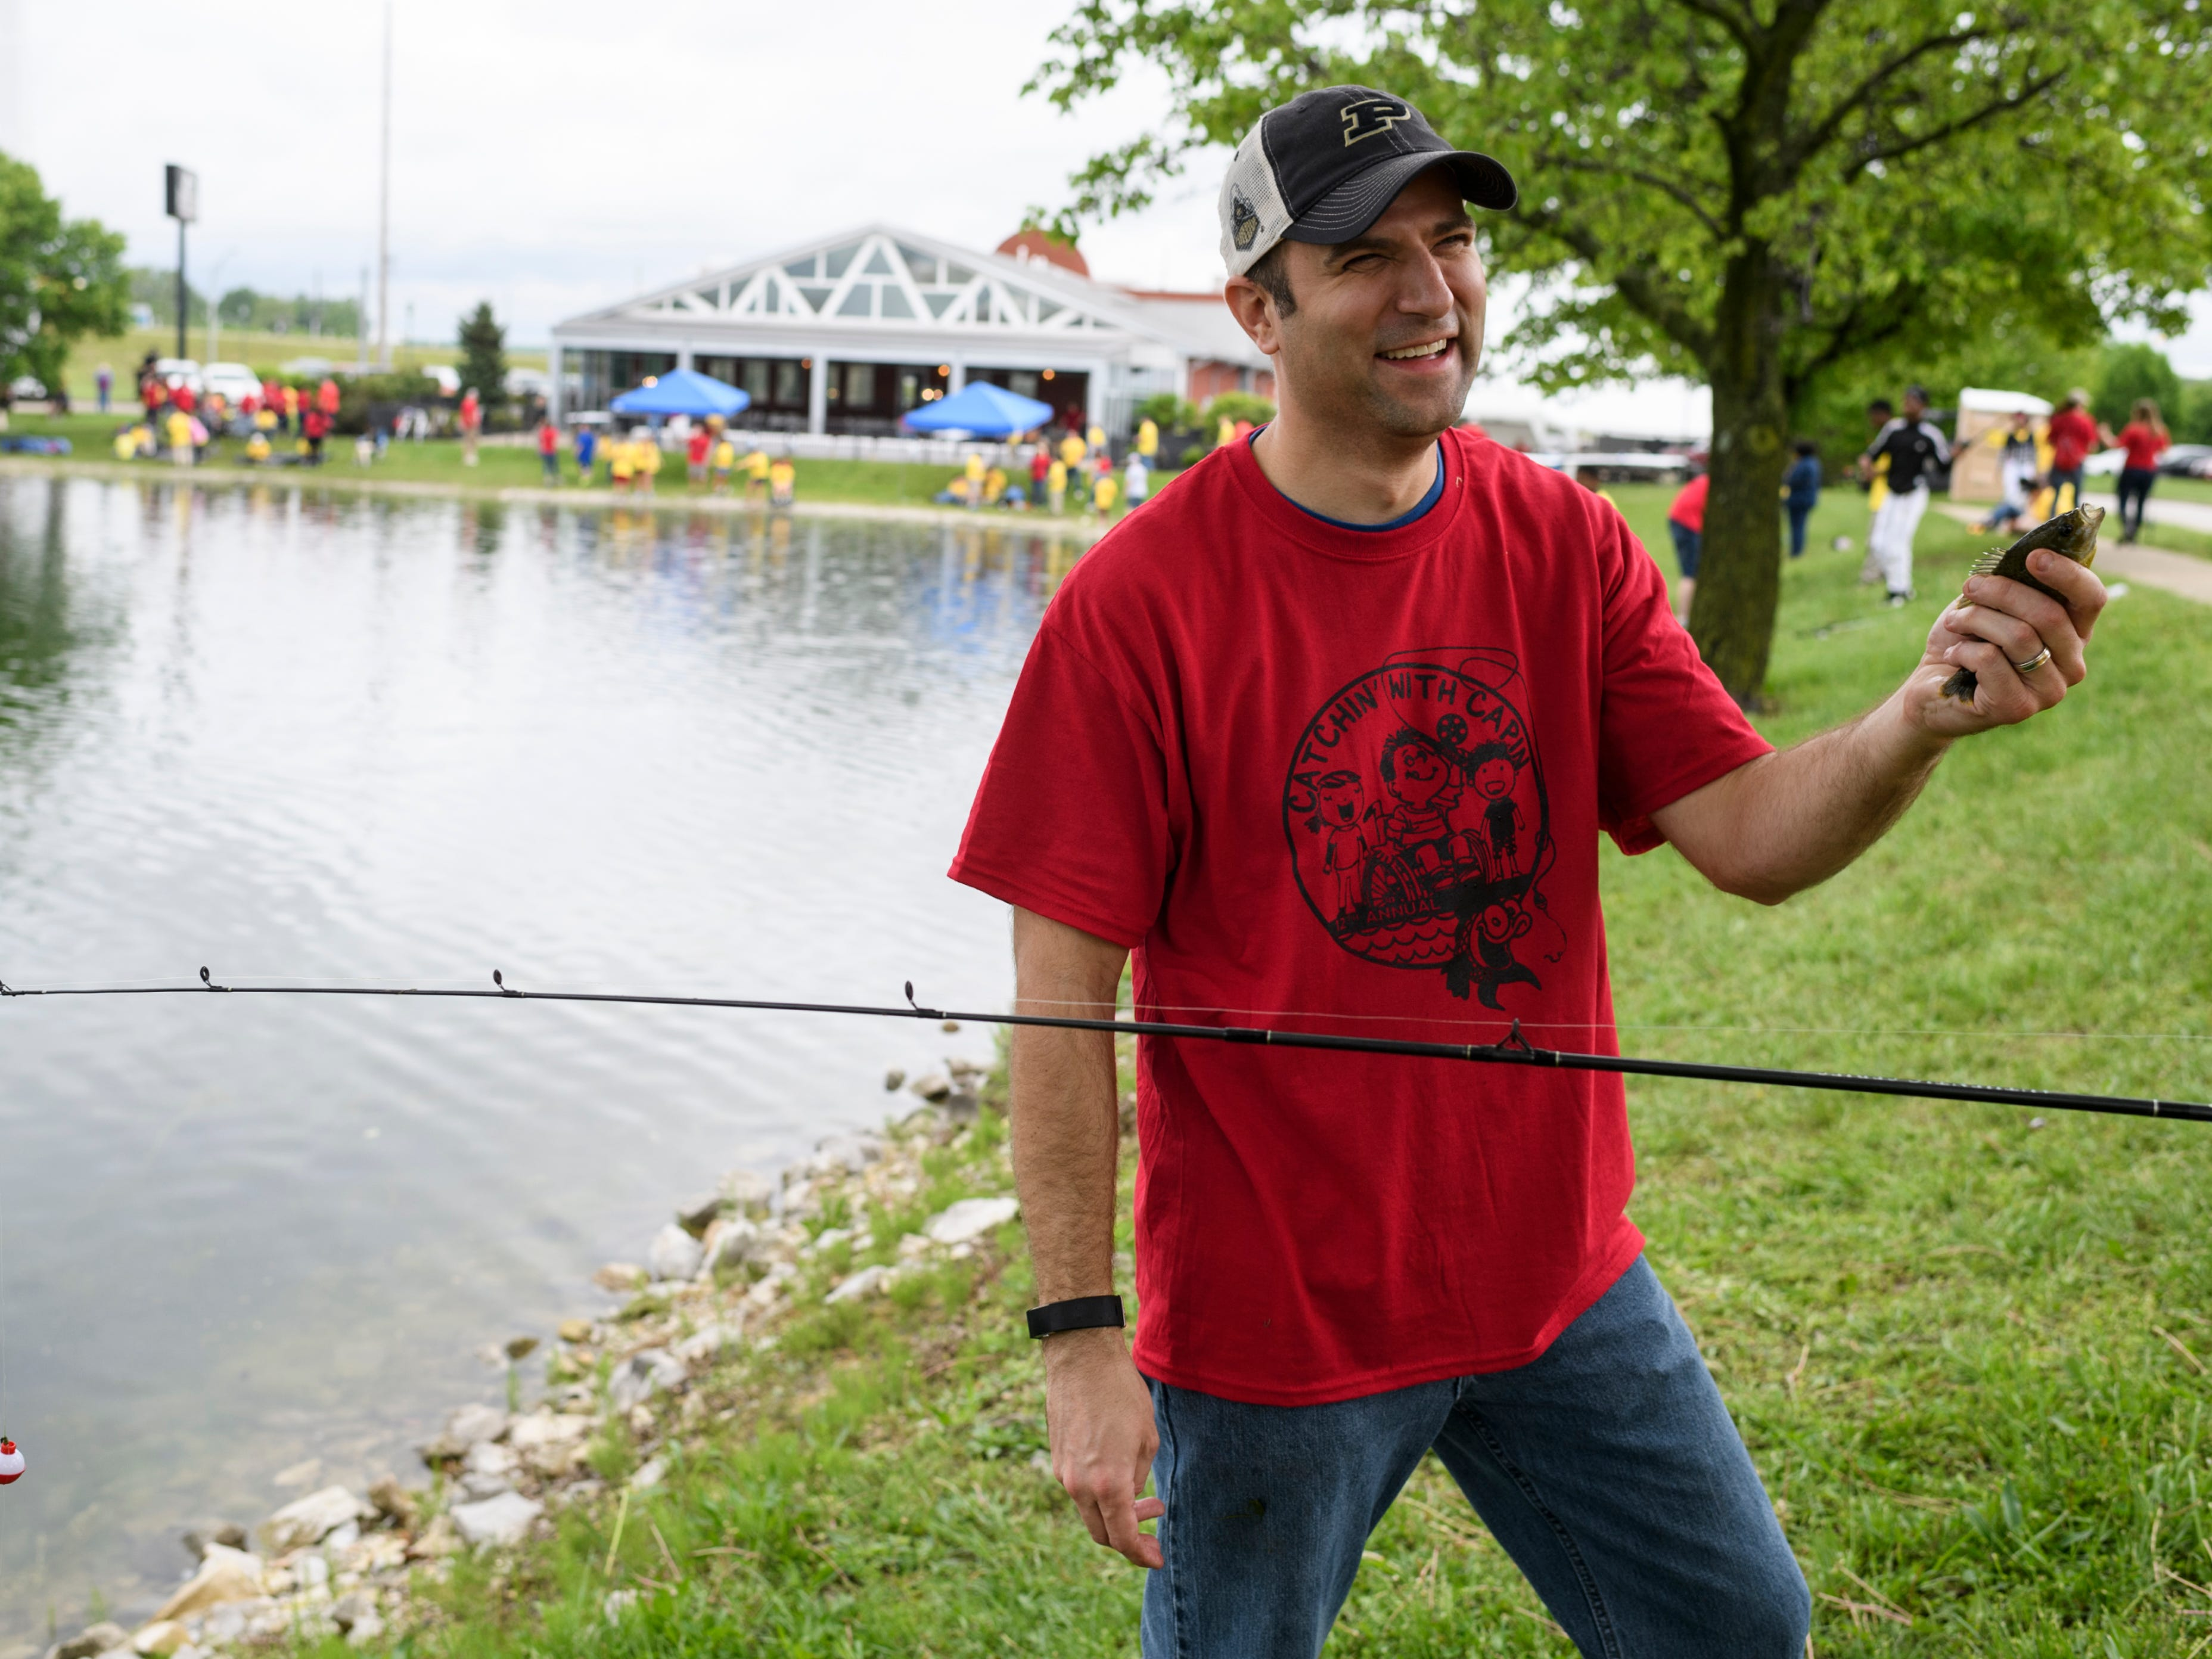 """Ryan Mayer, a volunteer, smiles after showing Alexis Niemeier how to kiss a fish during the 12th annual """"Catchin' with Capin"""" event at Eagle Lake in Evansville, Ind., Friday, May 3, 2019. Mayer works with Kyle Capin, the event's founder, at Evansville Water and Sewer Department."""